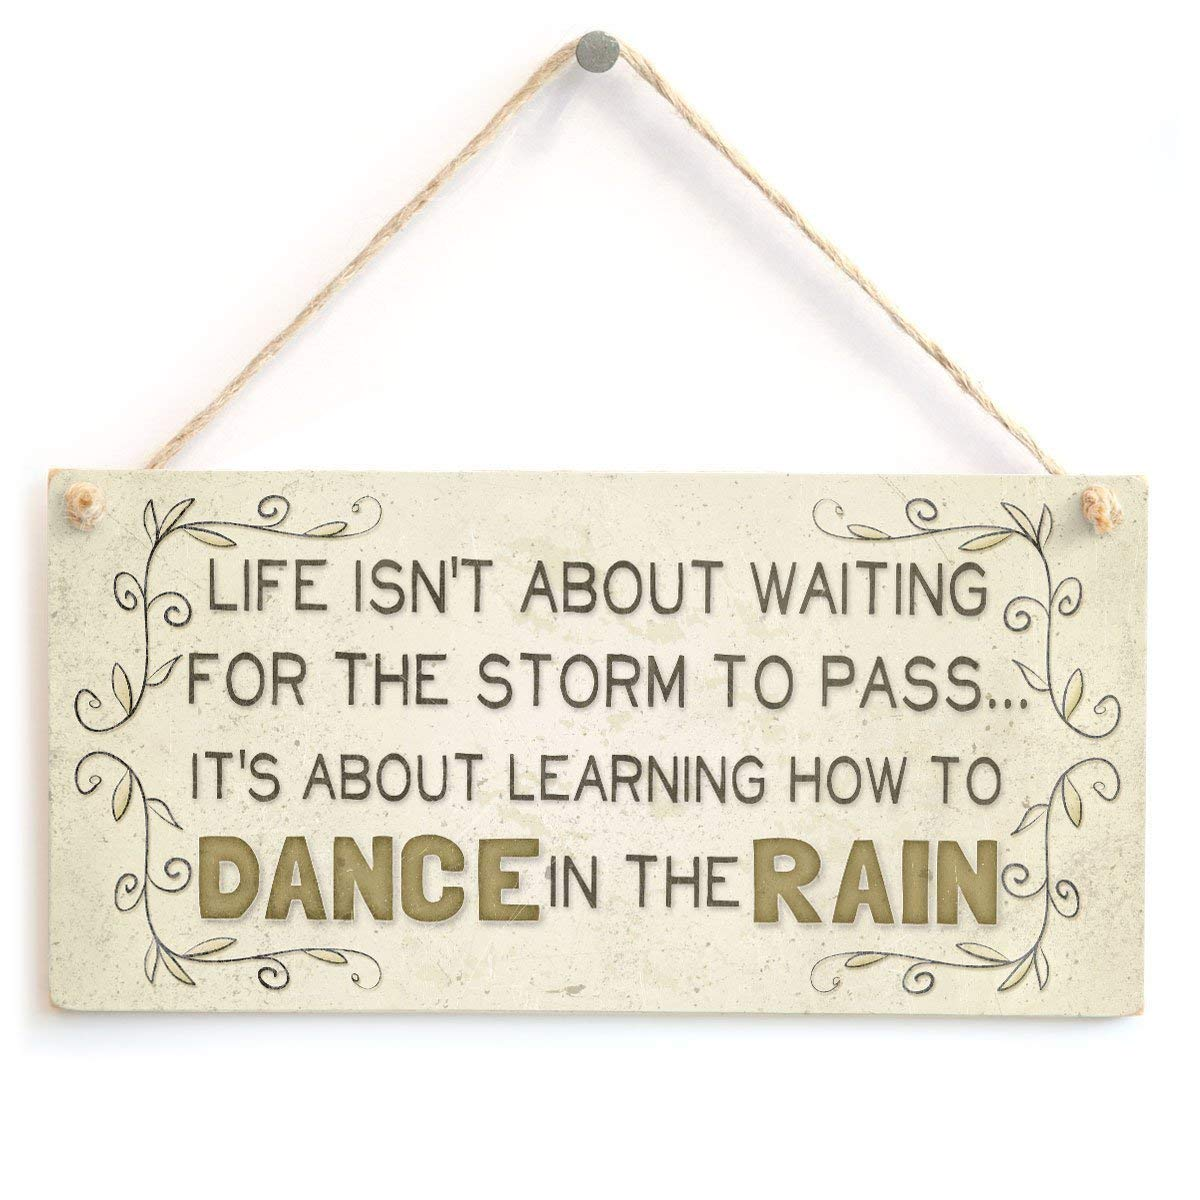 Life Isn't About Waiting for The Storm to Pass. It's About Learning How to Dance in The rain - Beautiful Motivational Life Saying Home Accessory Gift Sign by SZBOYU